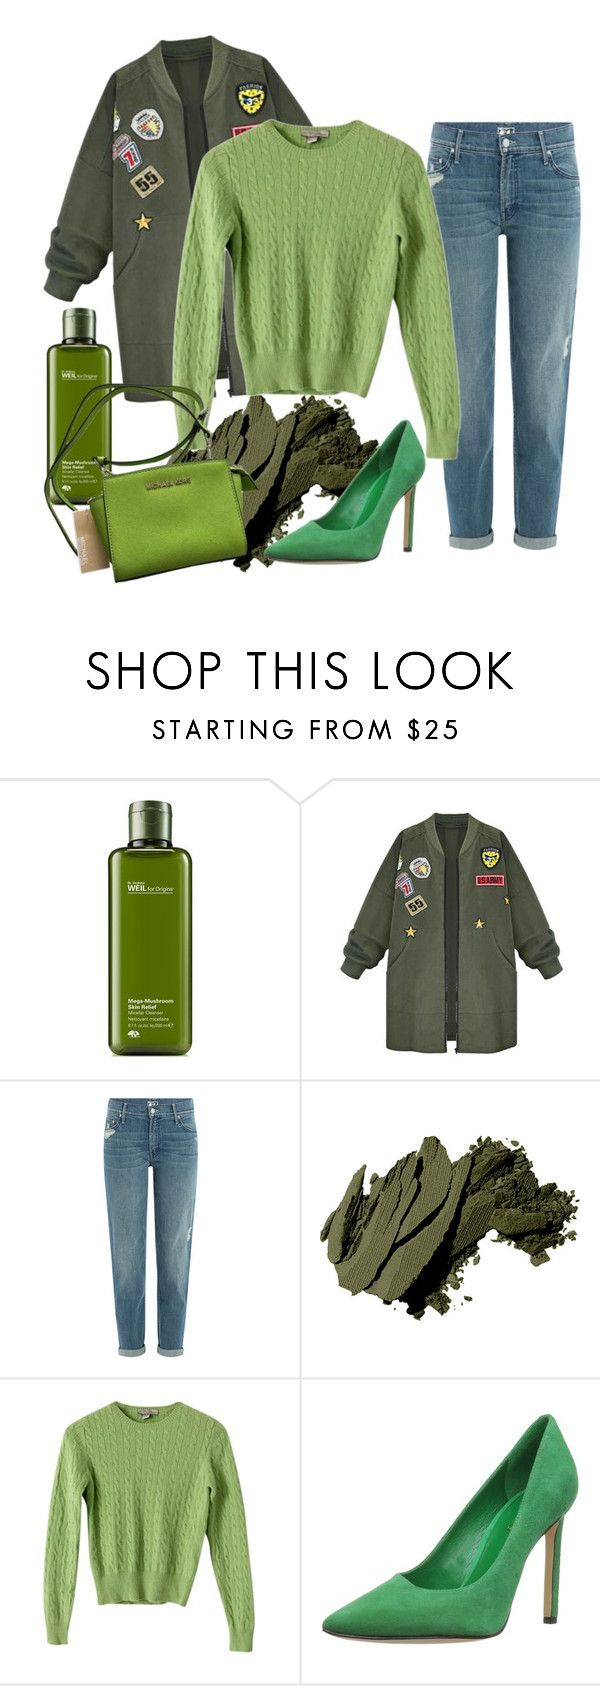 """""""Shades of Green"""" by crayonroad ❤ liked on Polyvore featuring Origins, WithChic, Mother, Bobbi Brown Cosmetics, Kinross, Nine West and MICHAEL Michael Kors"""